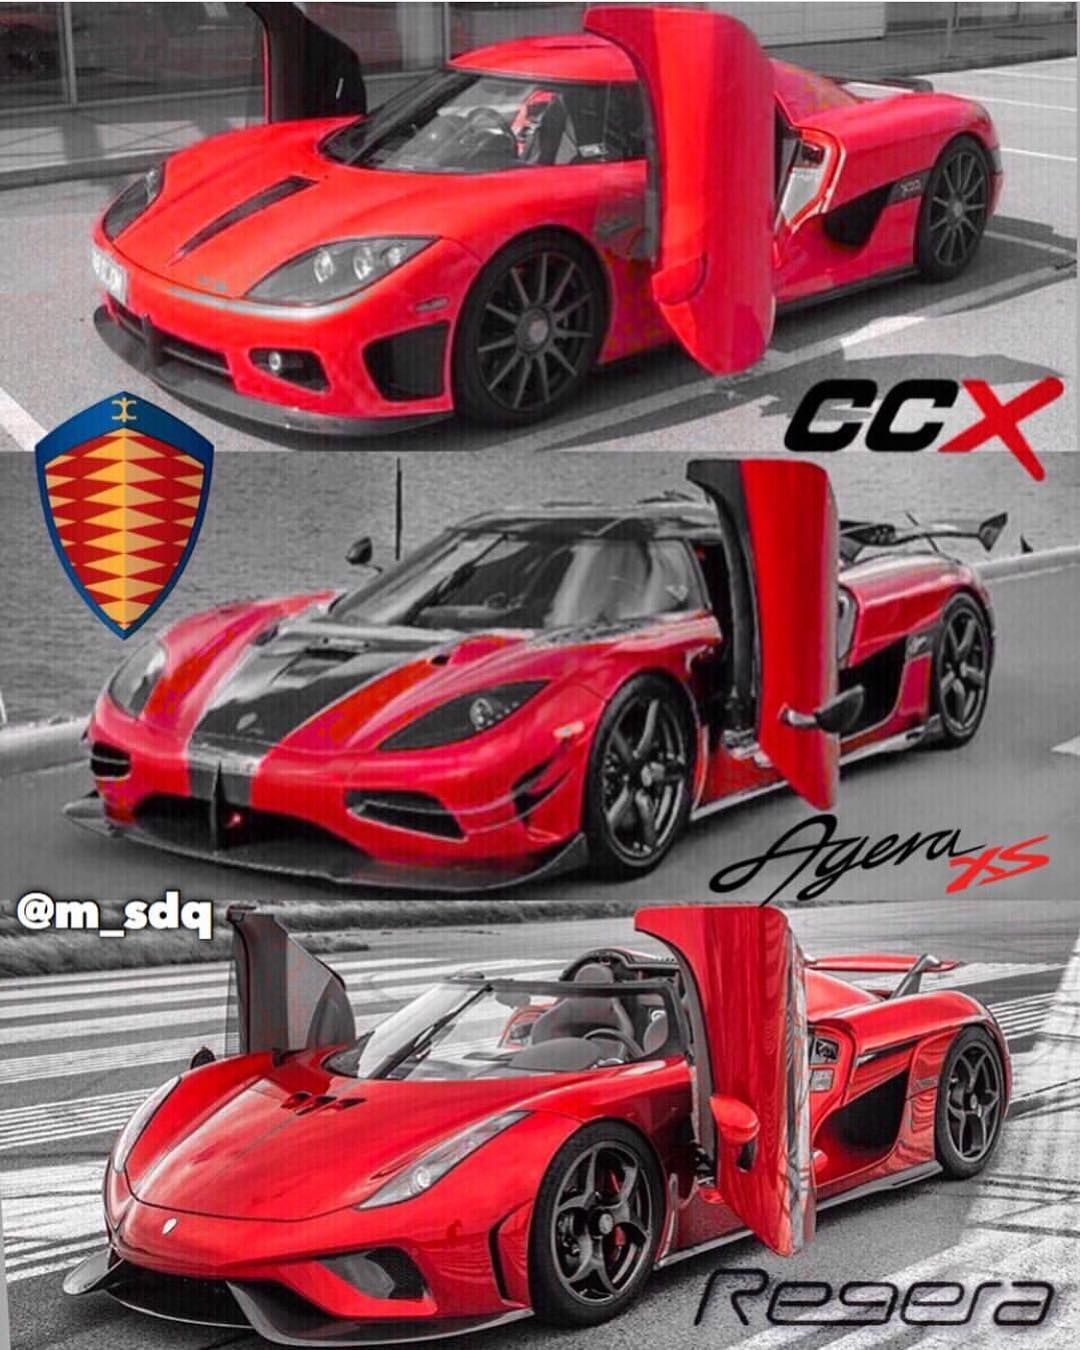 Koenigsegg Ccx Gt: CCX Agera RS Or Regera? Follow @noteworthyexotics For More